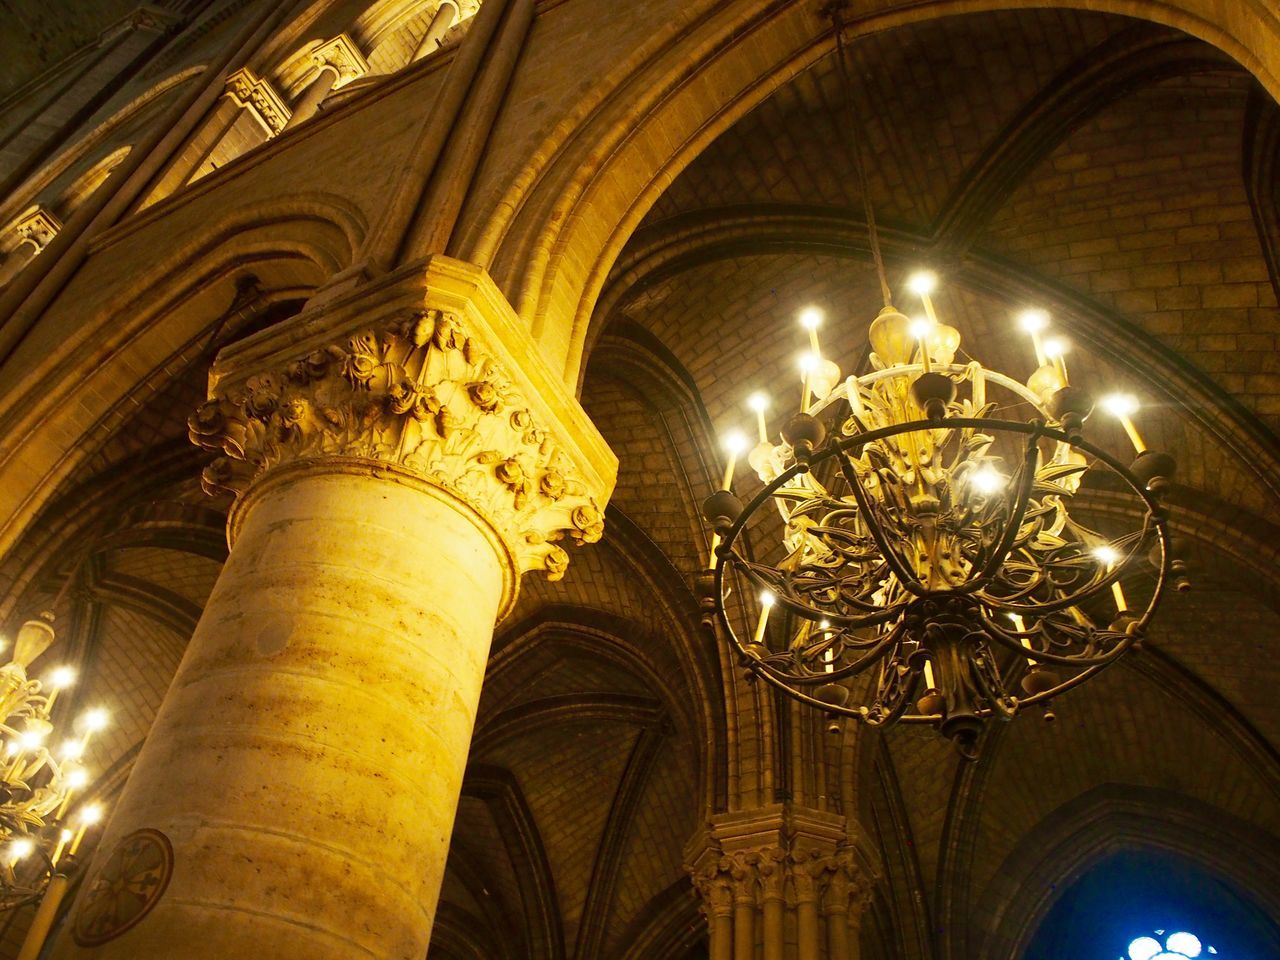 architecture, low angle view, built structure, illuminated, indoors, no people, history, religion, place of worship, travel destinations, architectural column, day, close-up